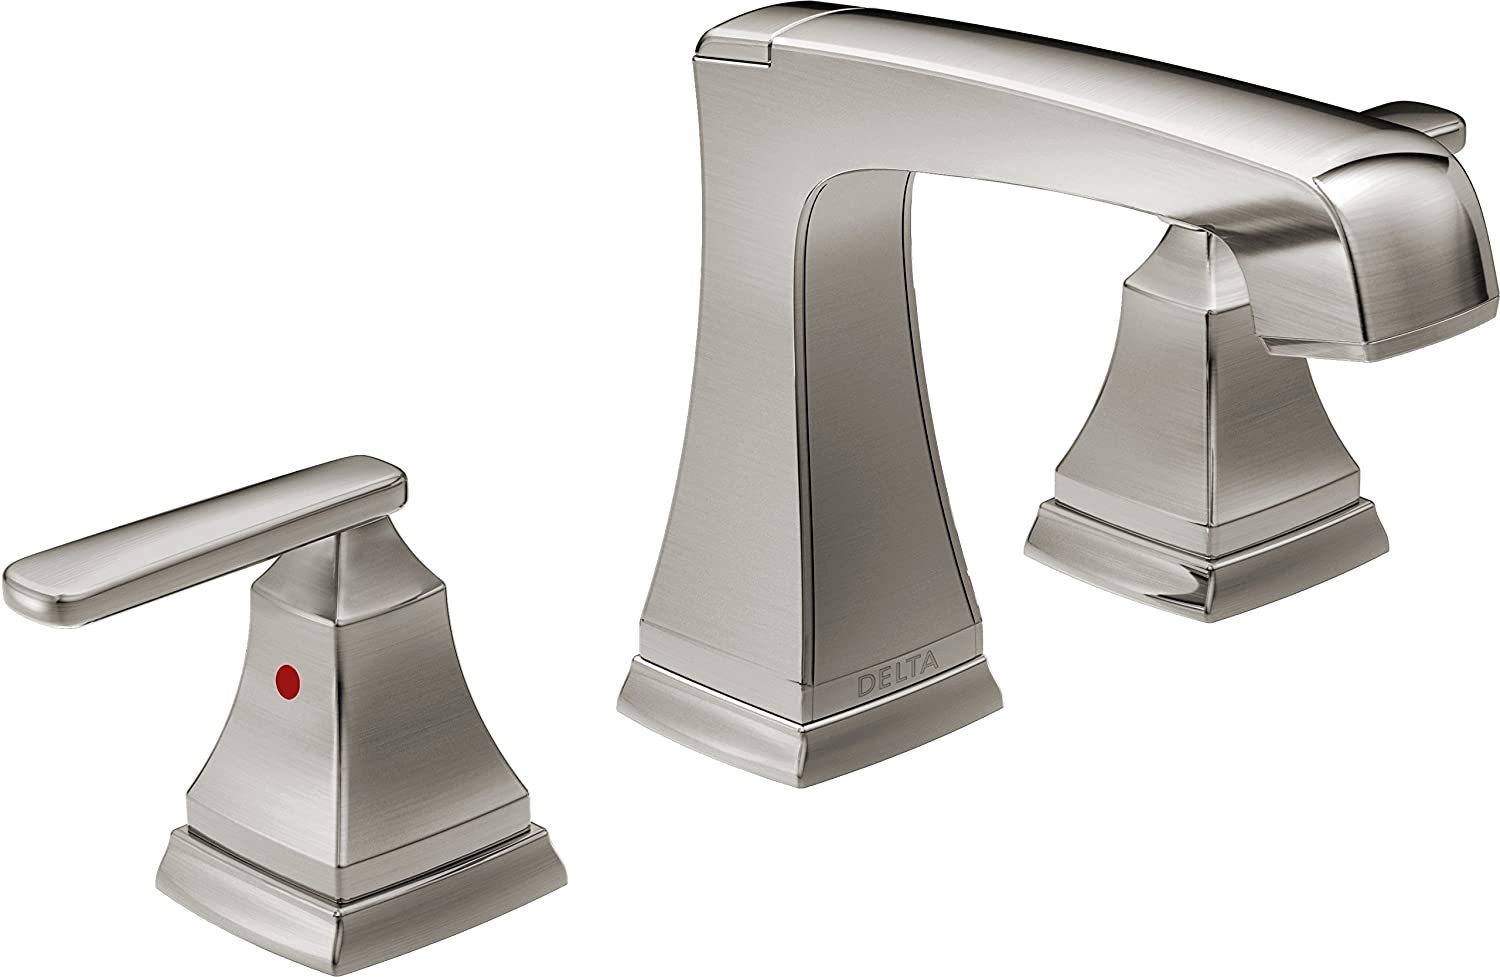 sink featured showers com and accessories faucets delta bathroom faucet bathnewproducts toilets